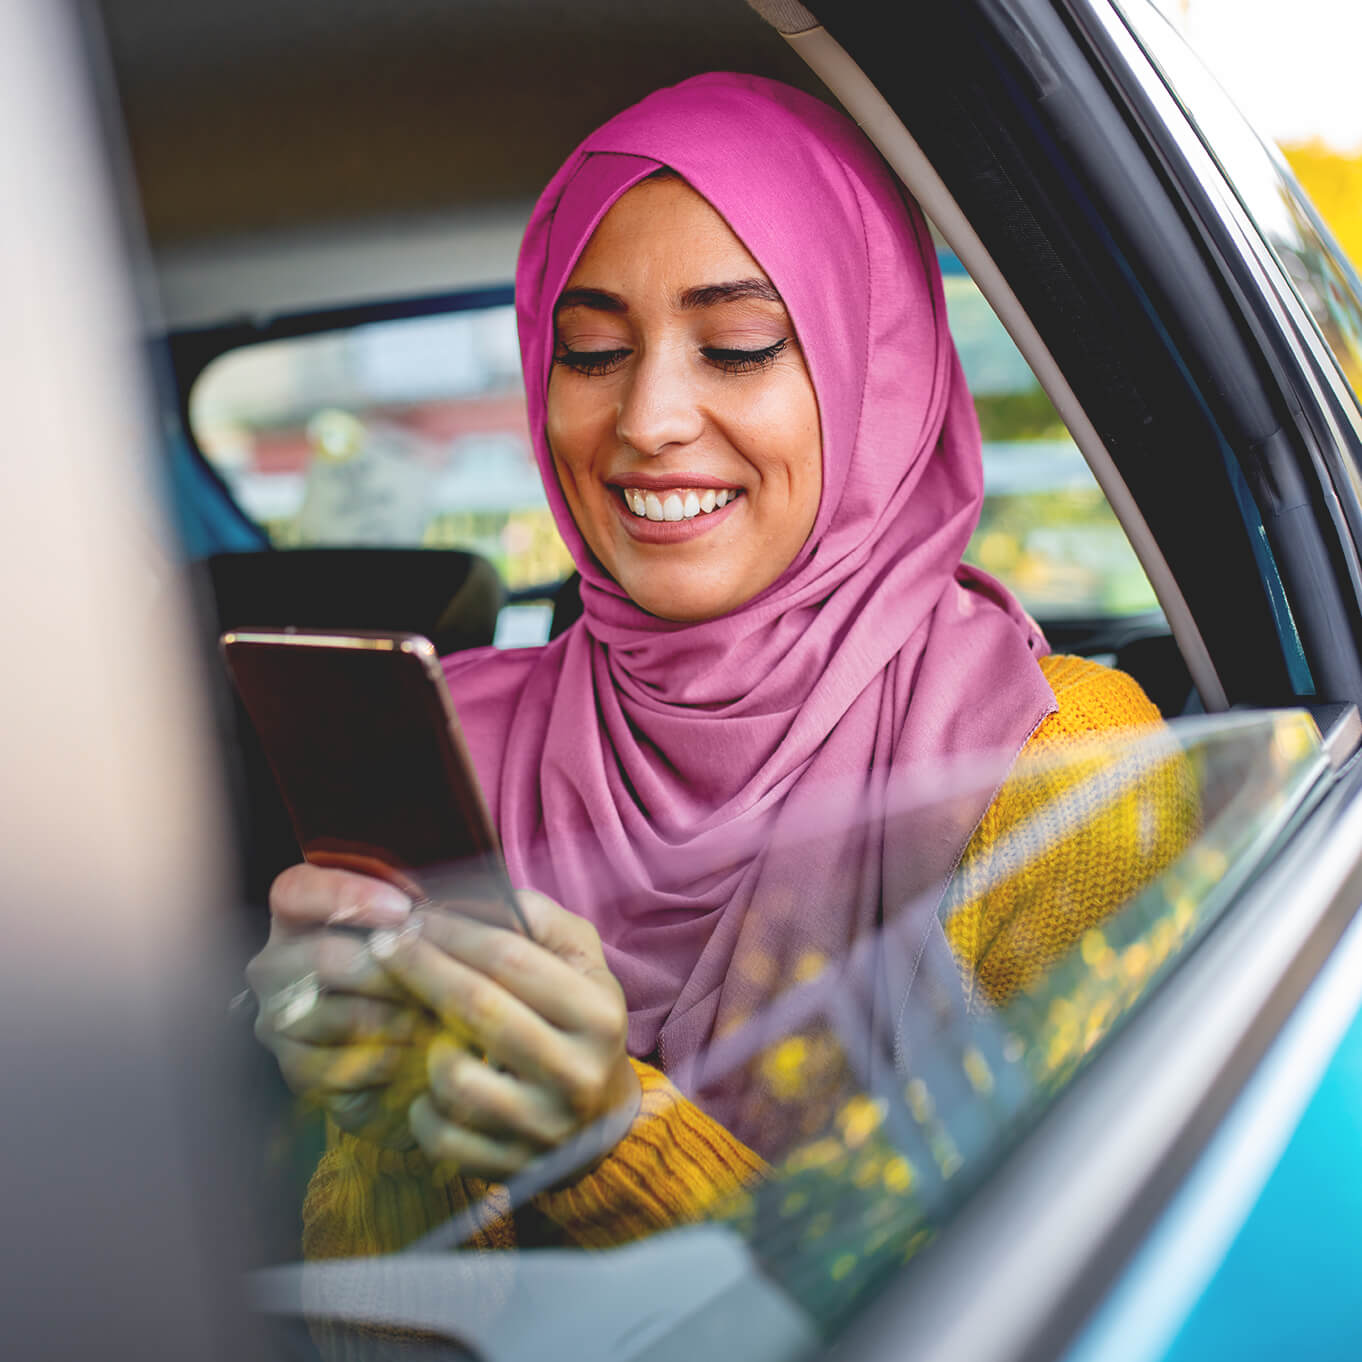 Smiling young woman wearing a yellow knit sweater and pink hijab looking at her mobile phone while seated in the back of a car.